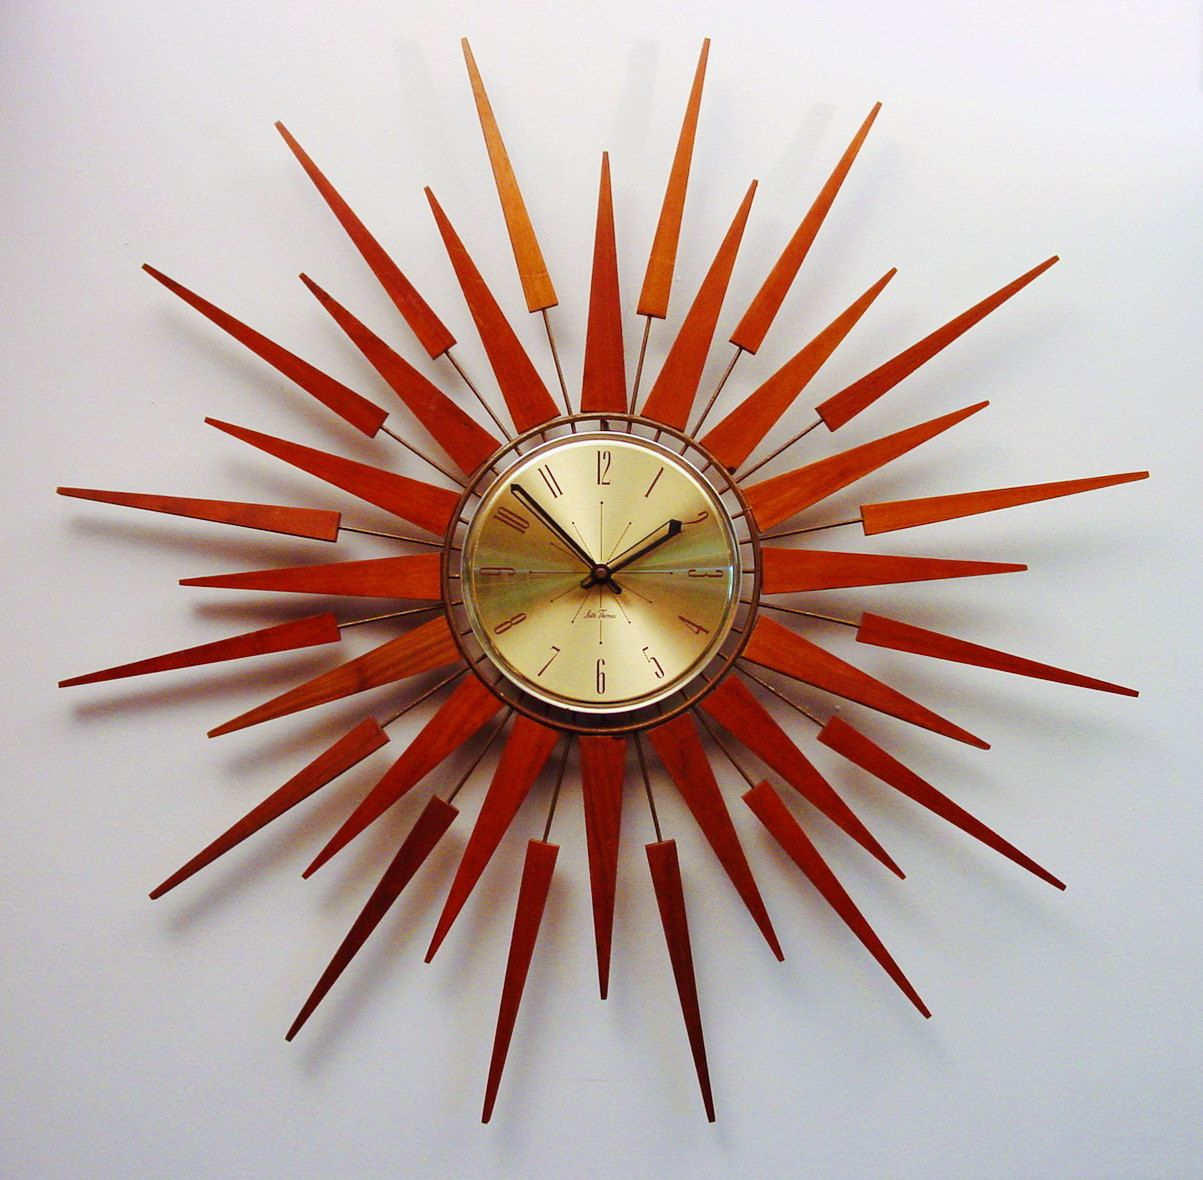 Midcentury Modern Starburst Wall Clock By Seth Thomas, Starflower Design  1960s